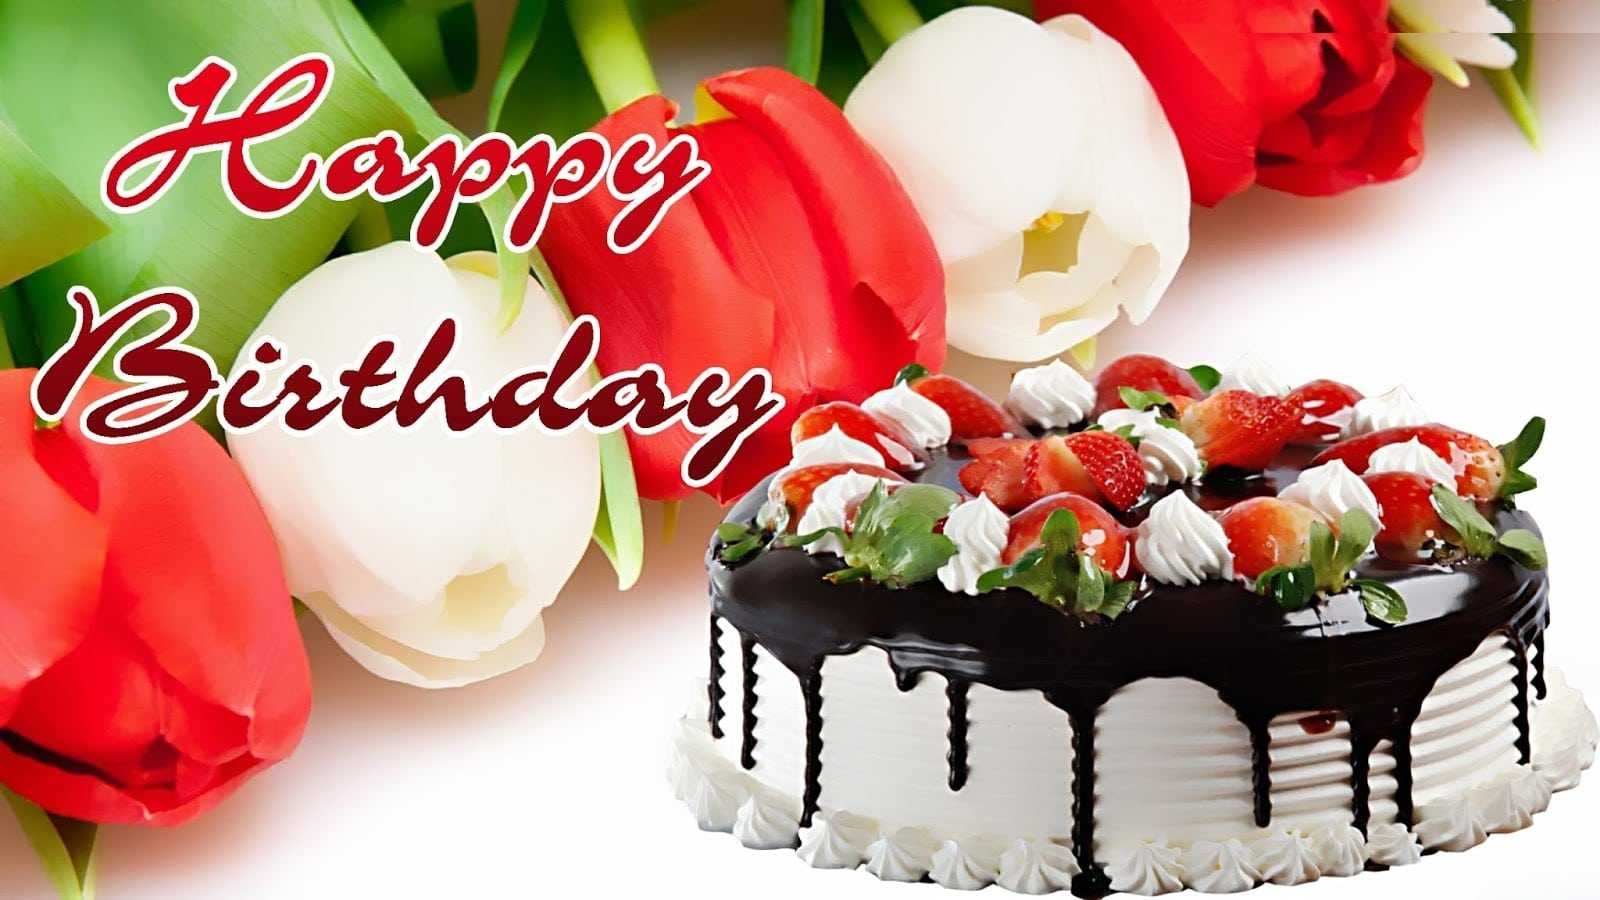 Advance Happy Birthday Wishes Hd Images Free Download - Todays News